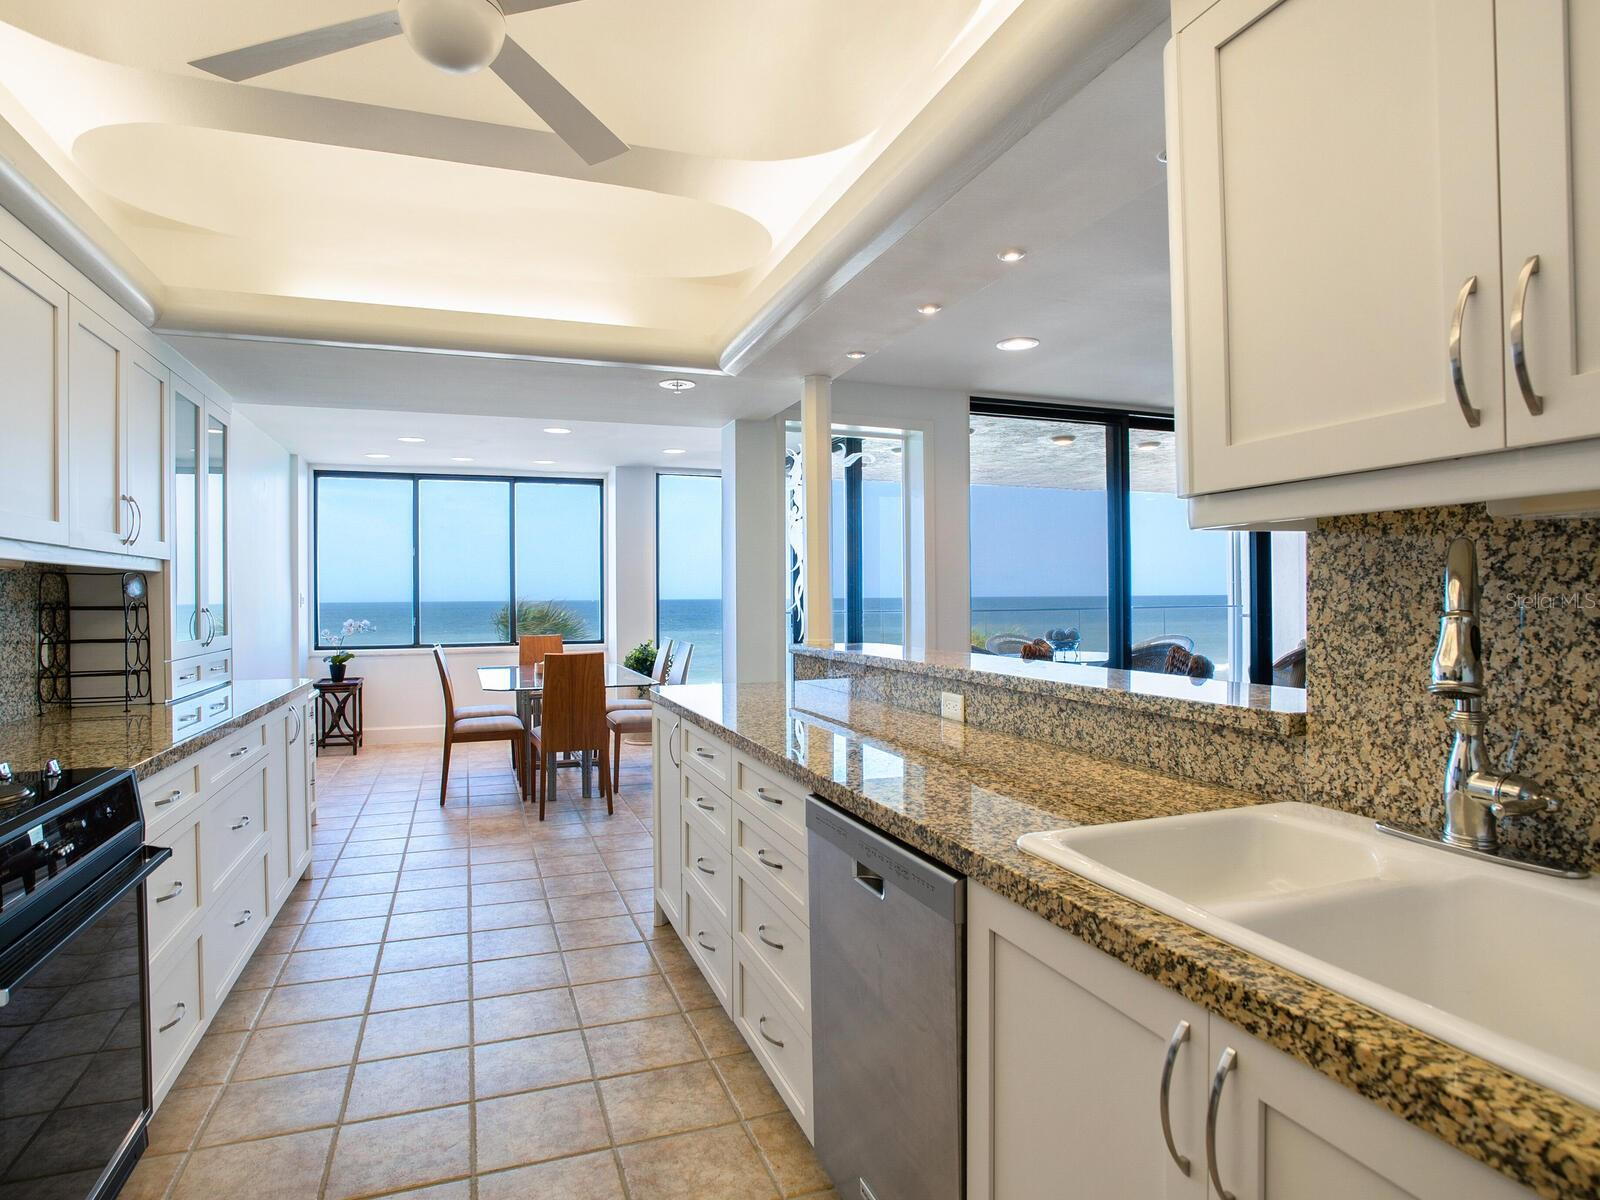 New Attachment - Condo for sale at 1511 Gulf Of Mexico Dr #202, Longboat Key, FL 34228 - MLS Number is A4481414